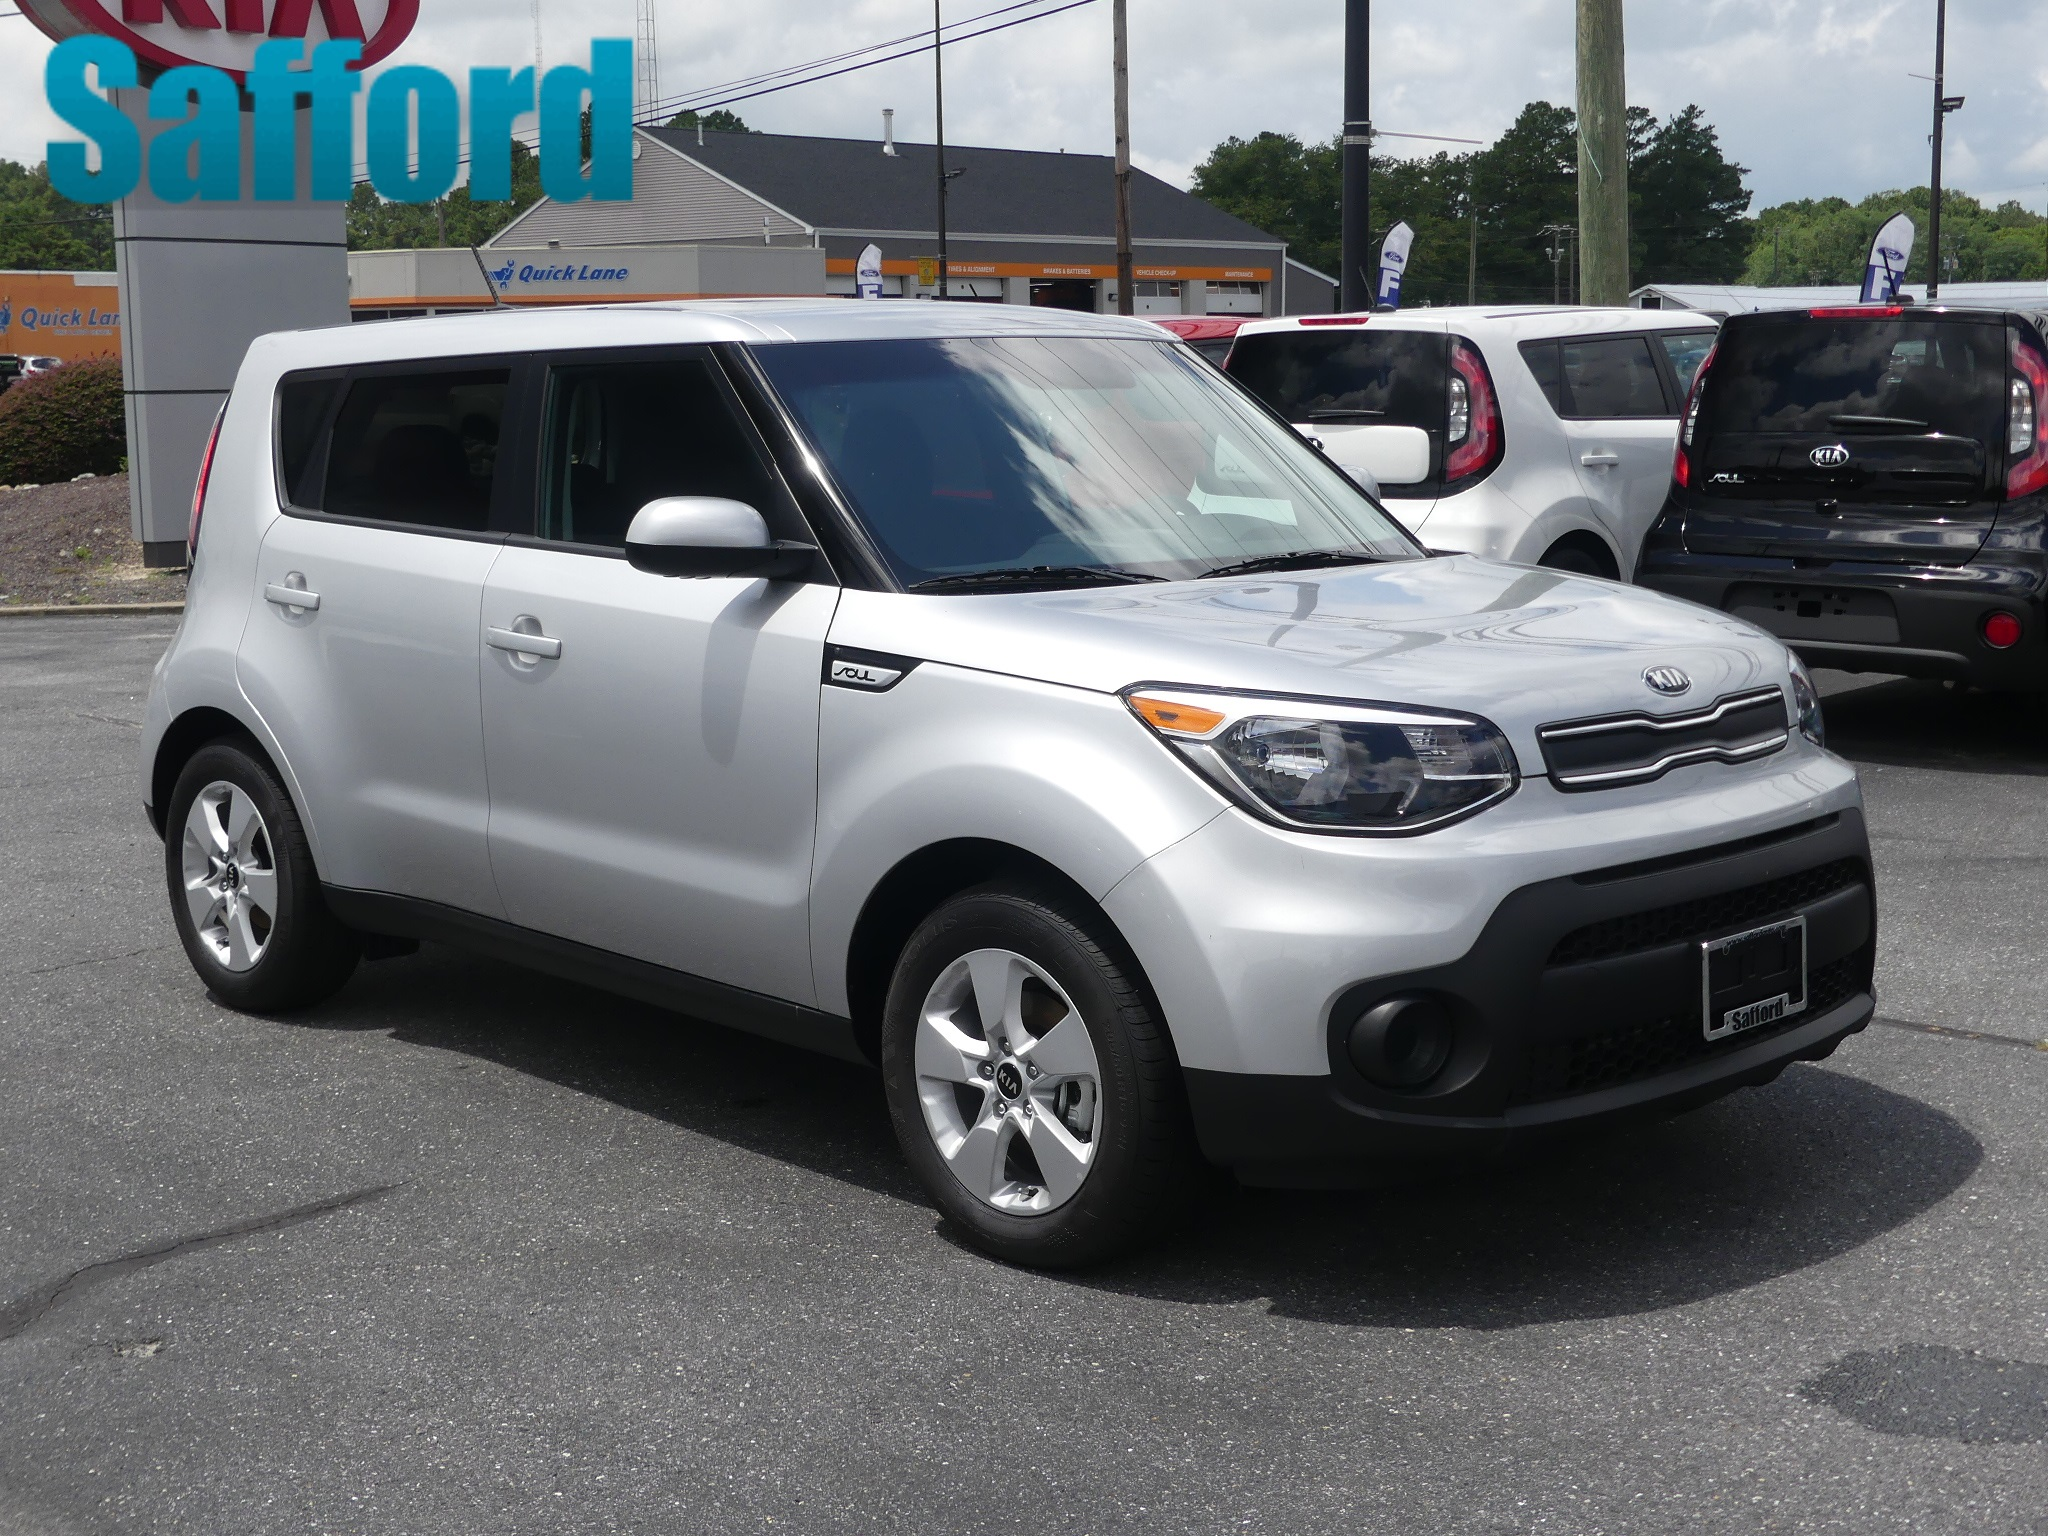 Kia Soul: Outside temperature